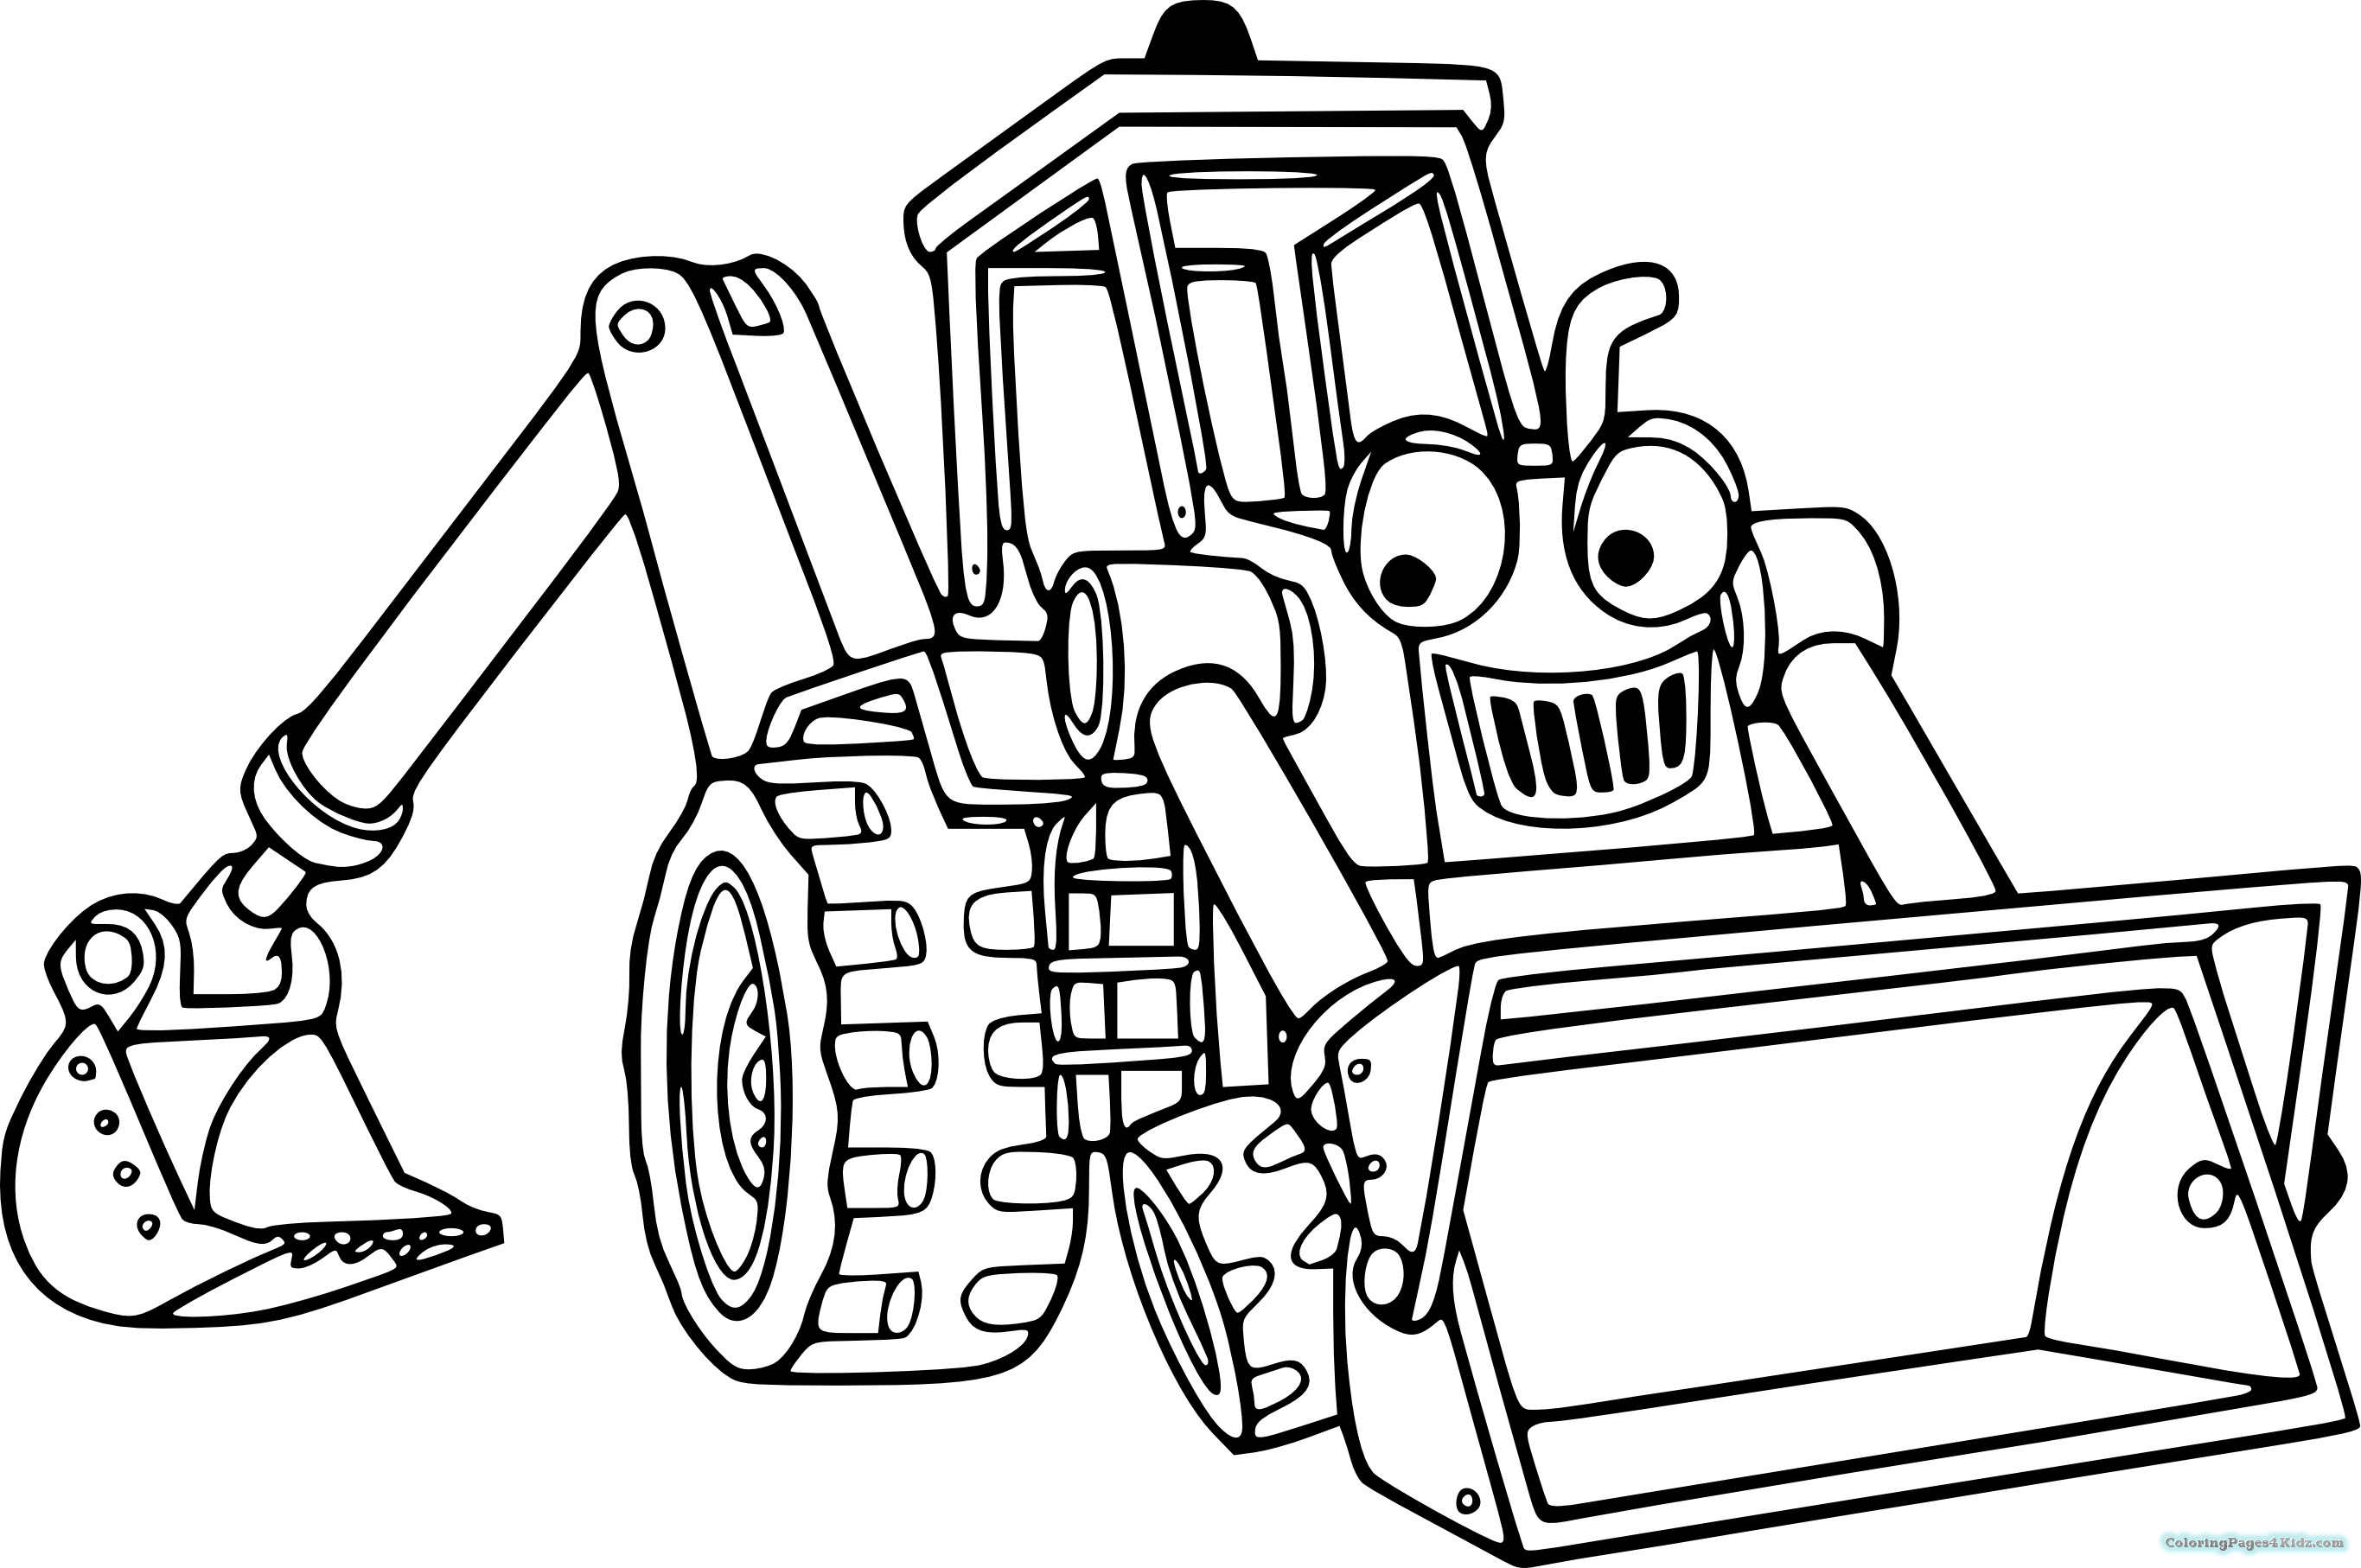 tractor color pages tractor drawing for kids at getdrawings free download pages color tractor